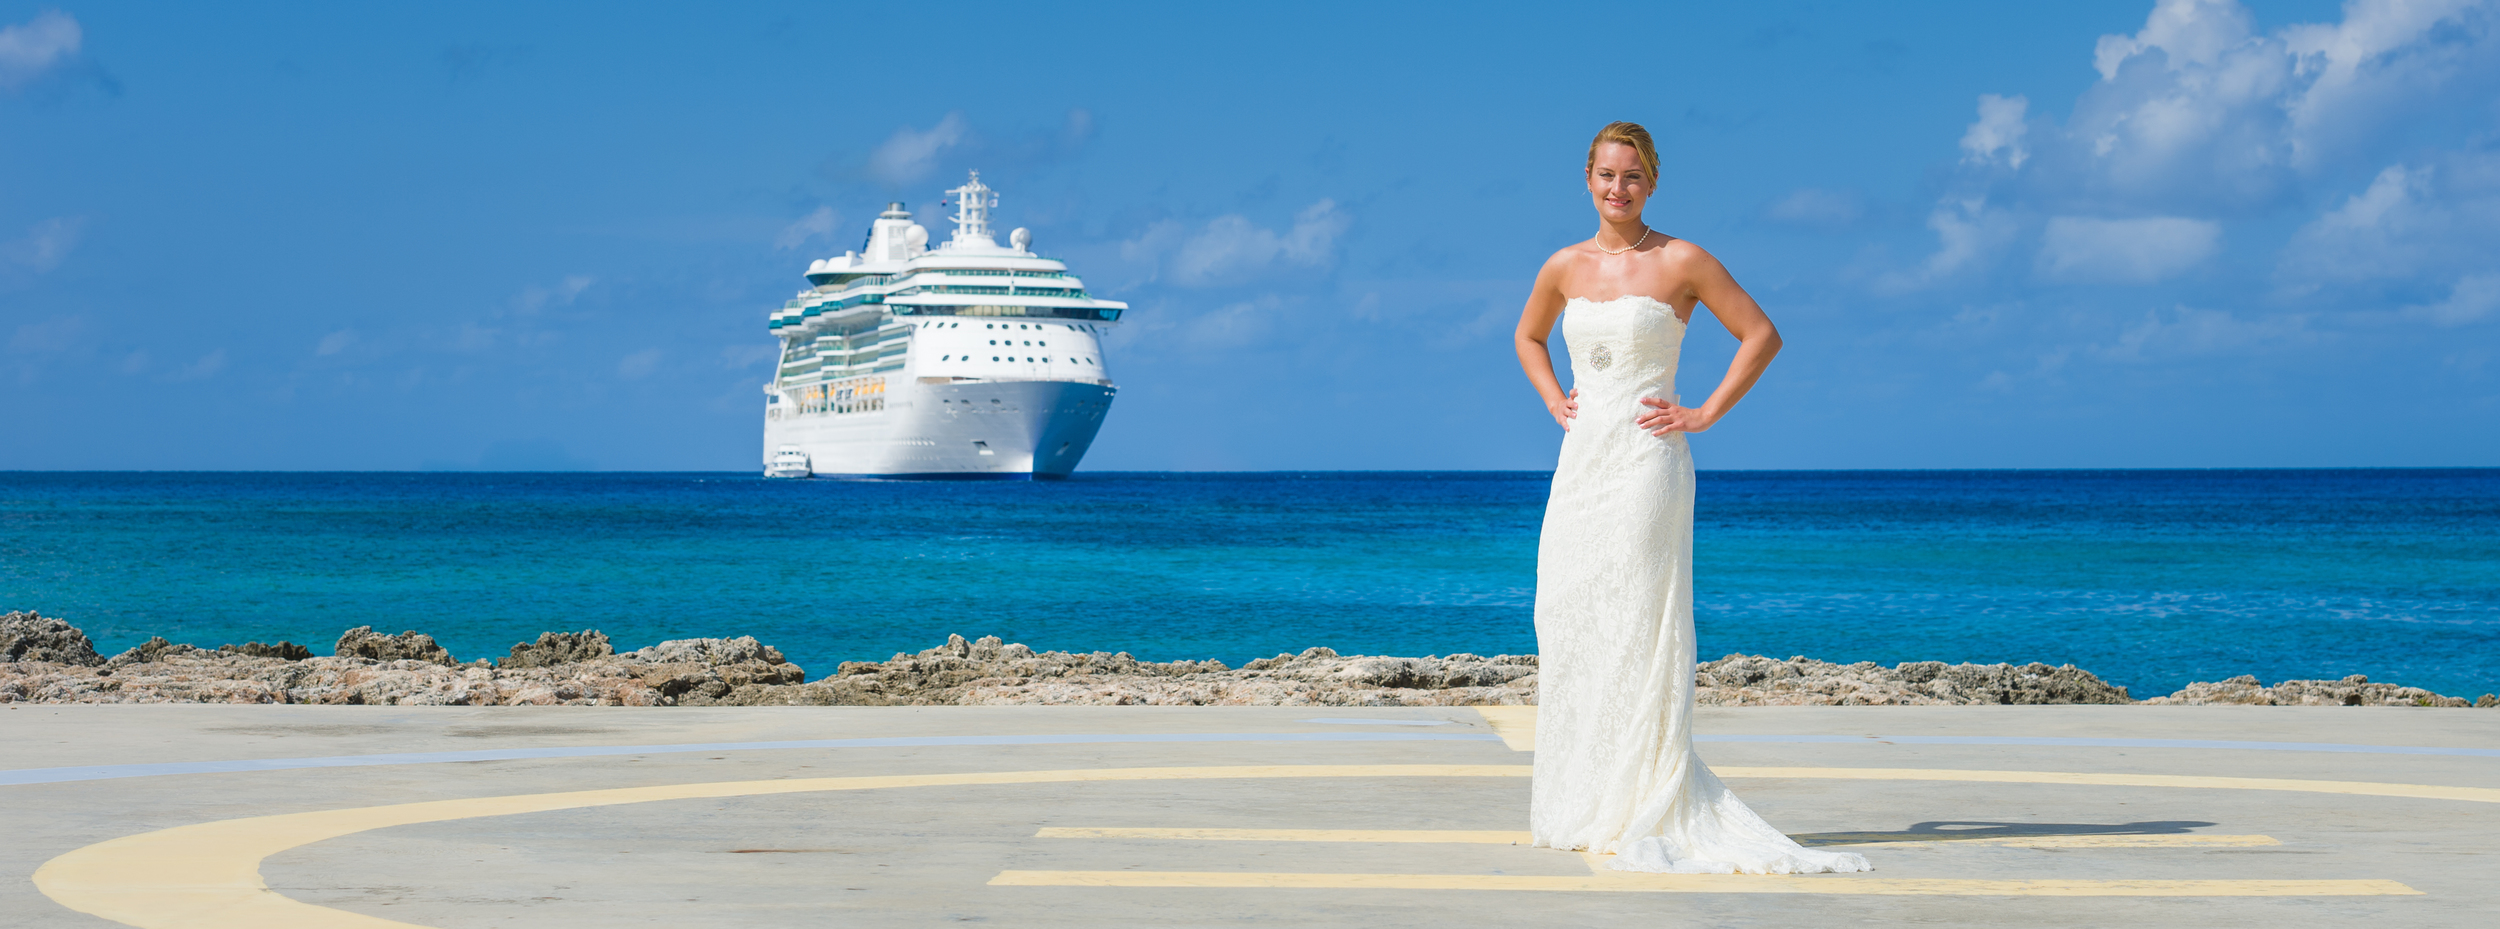 Bride stands on Helipad next to Simply Weddings